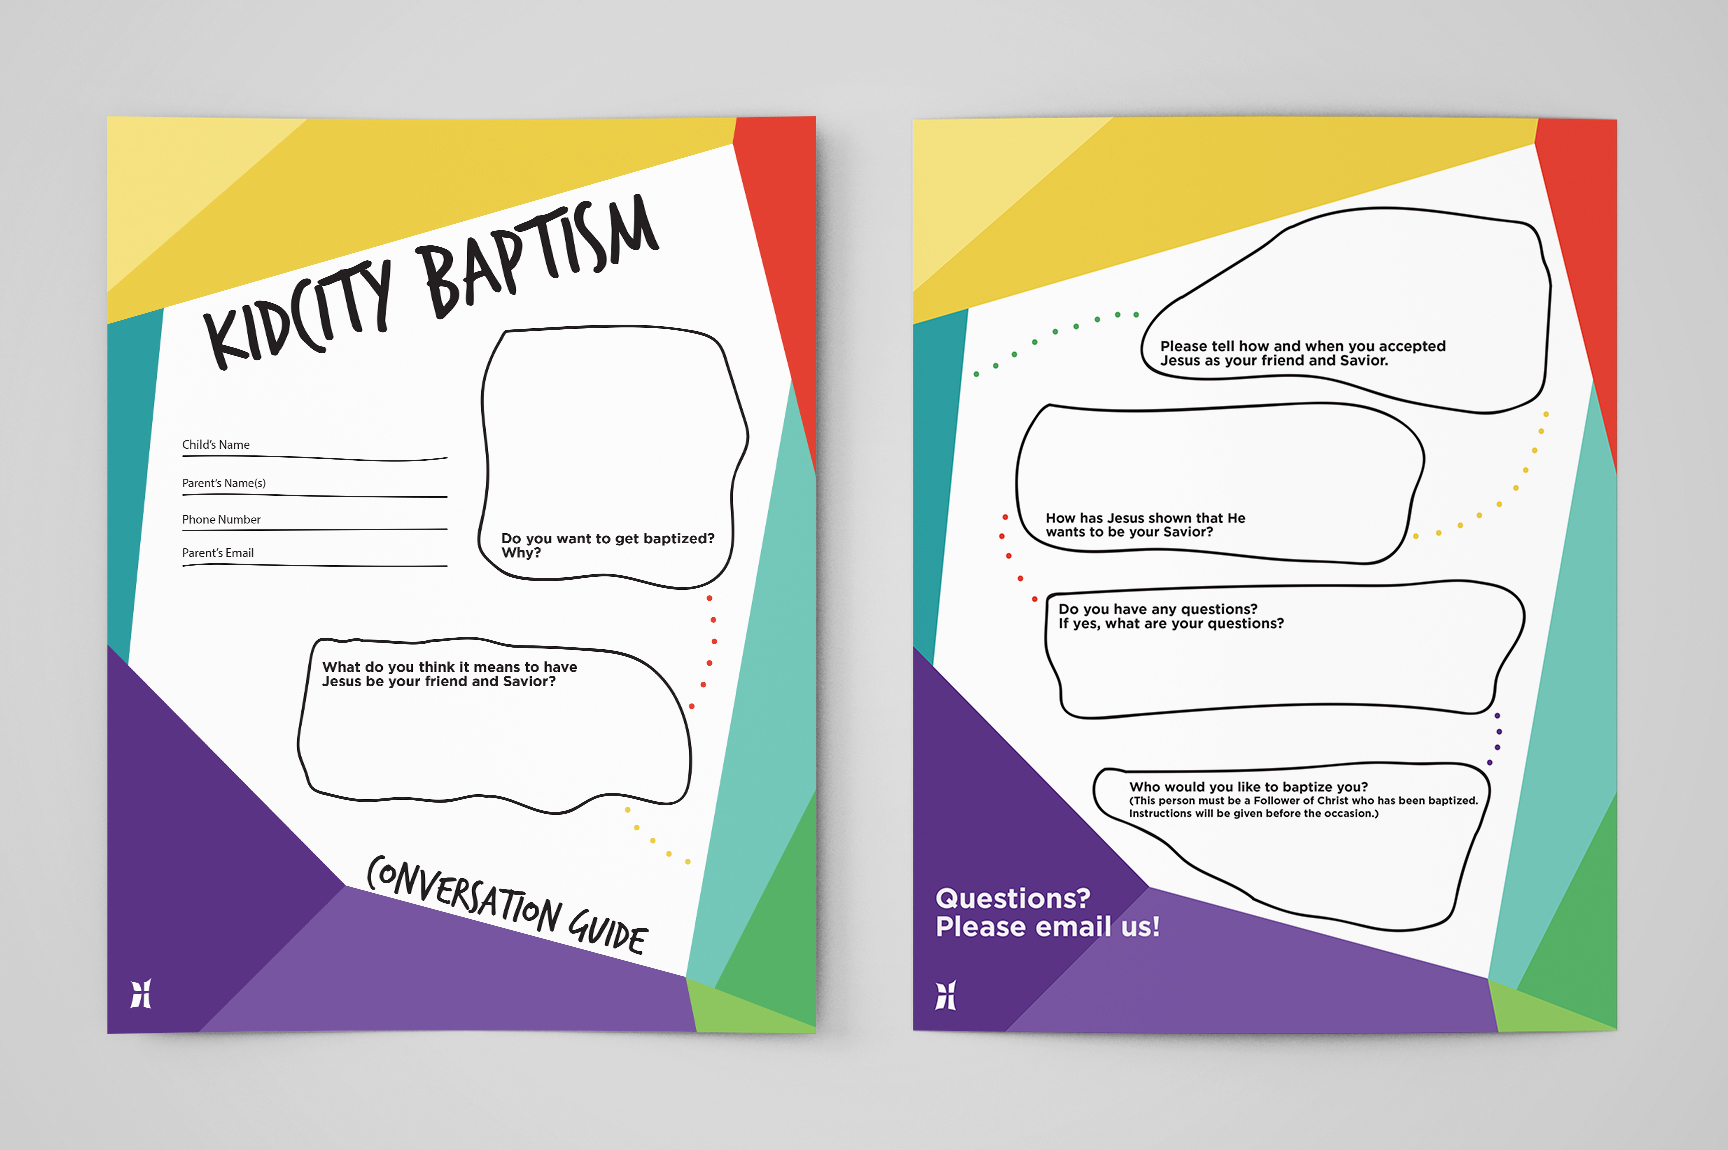 Our Kids ministry, KidCity, wanted a handout they could use with their kids who were interested in being baptized. This handout is used by KidCity staff and leaders to guide kids through a series of questions to help them understand what baptism means and to make sure they better understand their decision.  Since this resource is geared towards elementary age kids, I wanted it to be fun and engaging and have a hand-drawn doodle type of feel and provide the kids with a type of map they could follow from one question to another.